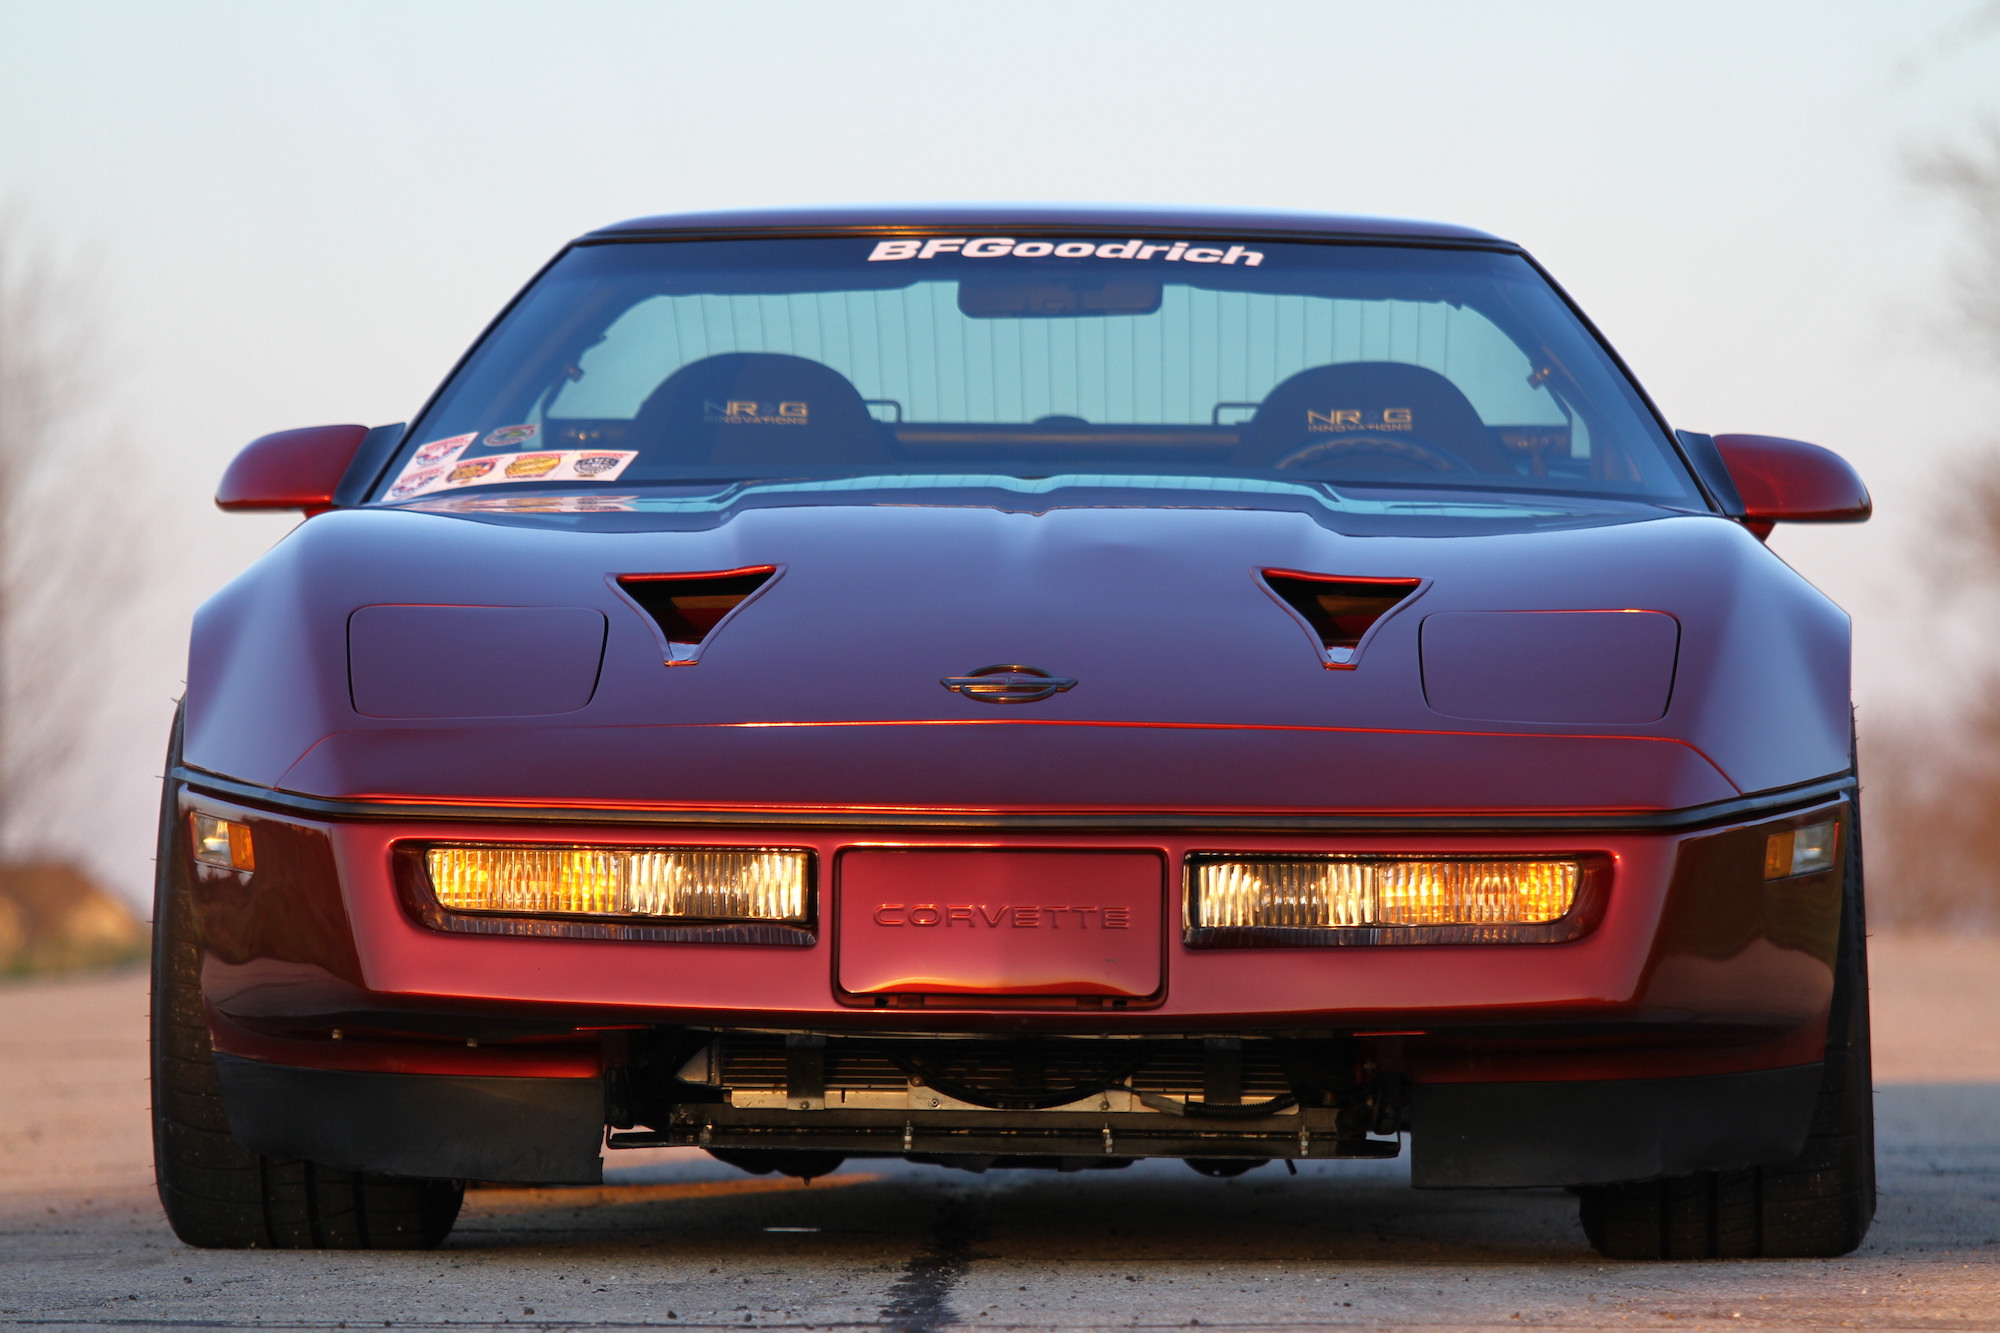 1987 Corvette with a Supercharged LS9 V8